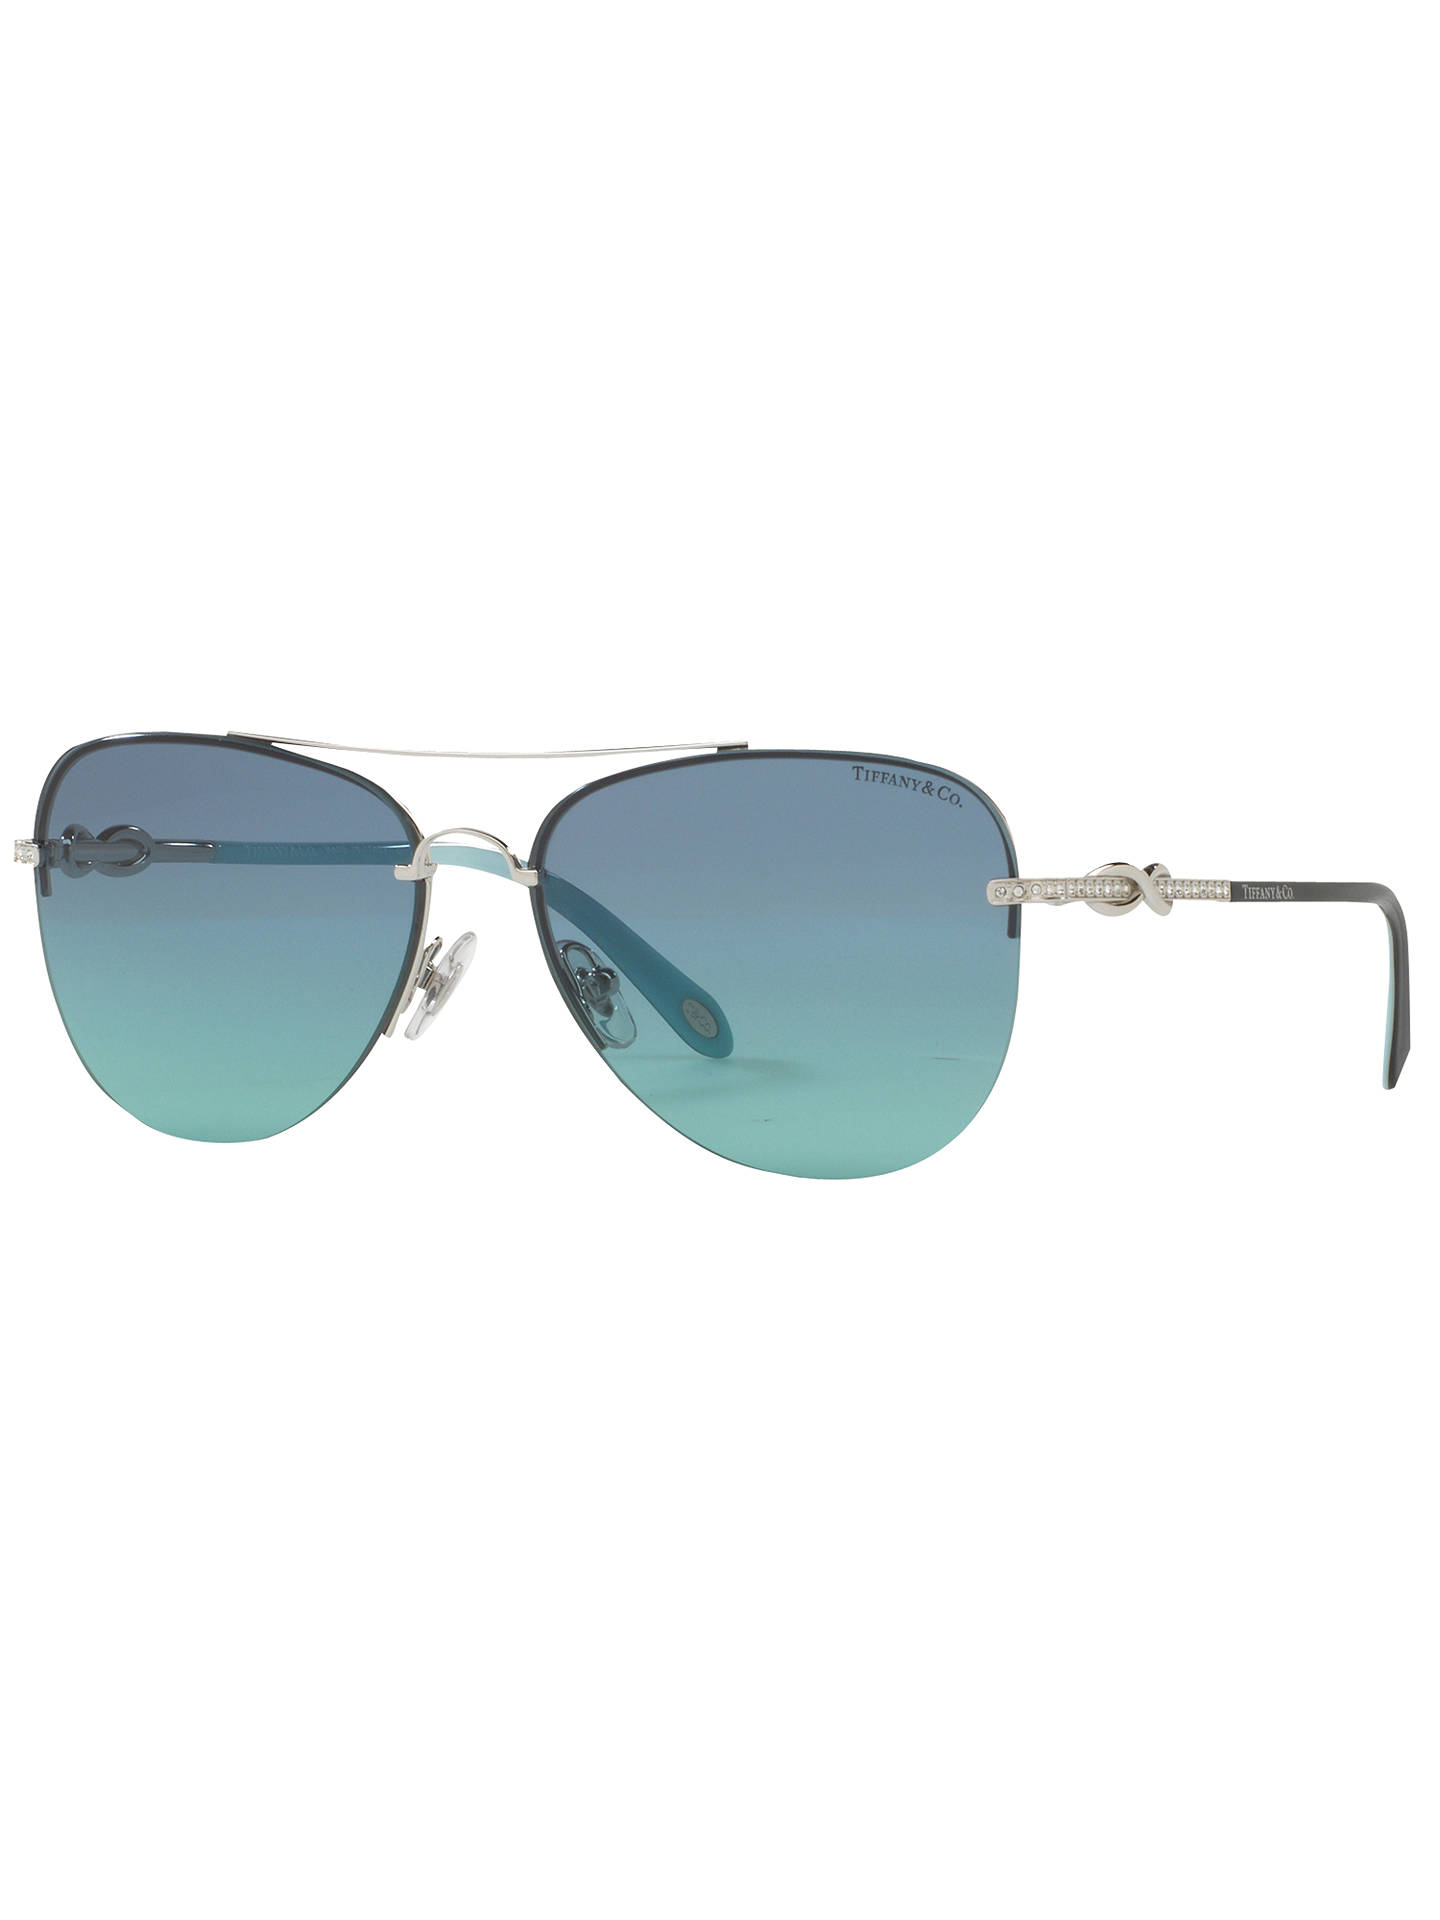 0b71f658e6e BuyTiffany   Co TF3054B Aviator Sunglasses